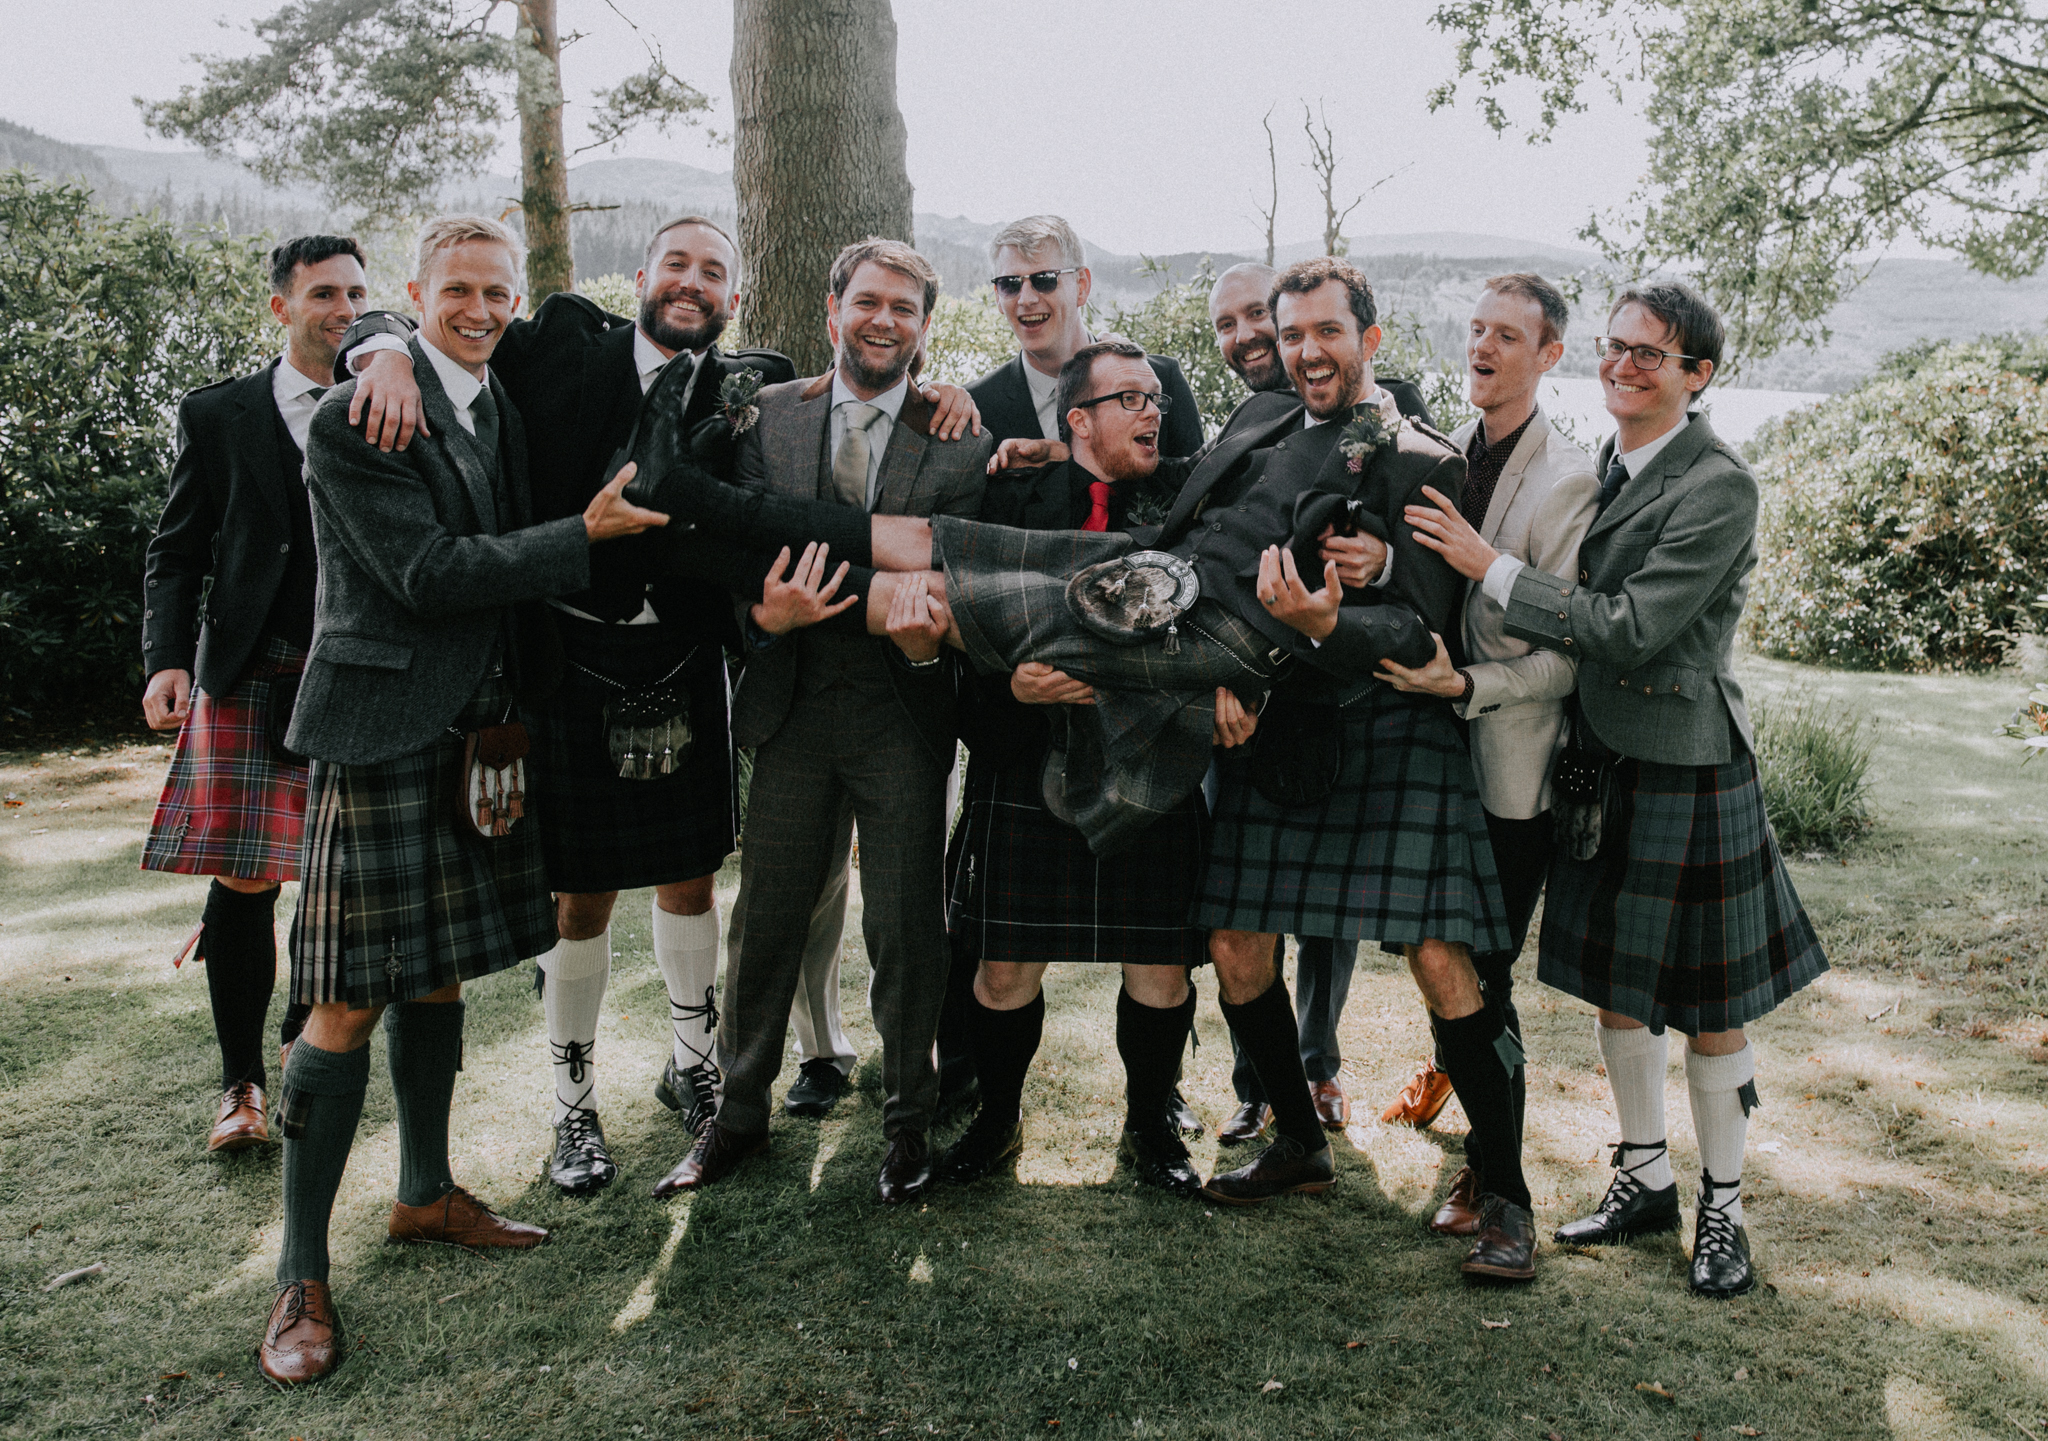 A bunch of groomsmen holding the groom on arms and laughing